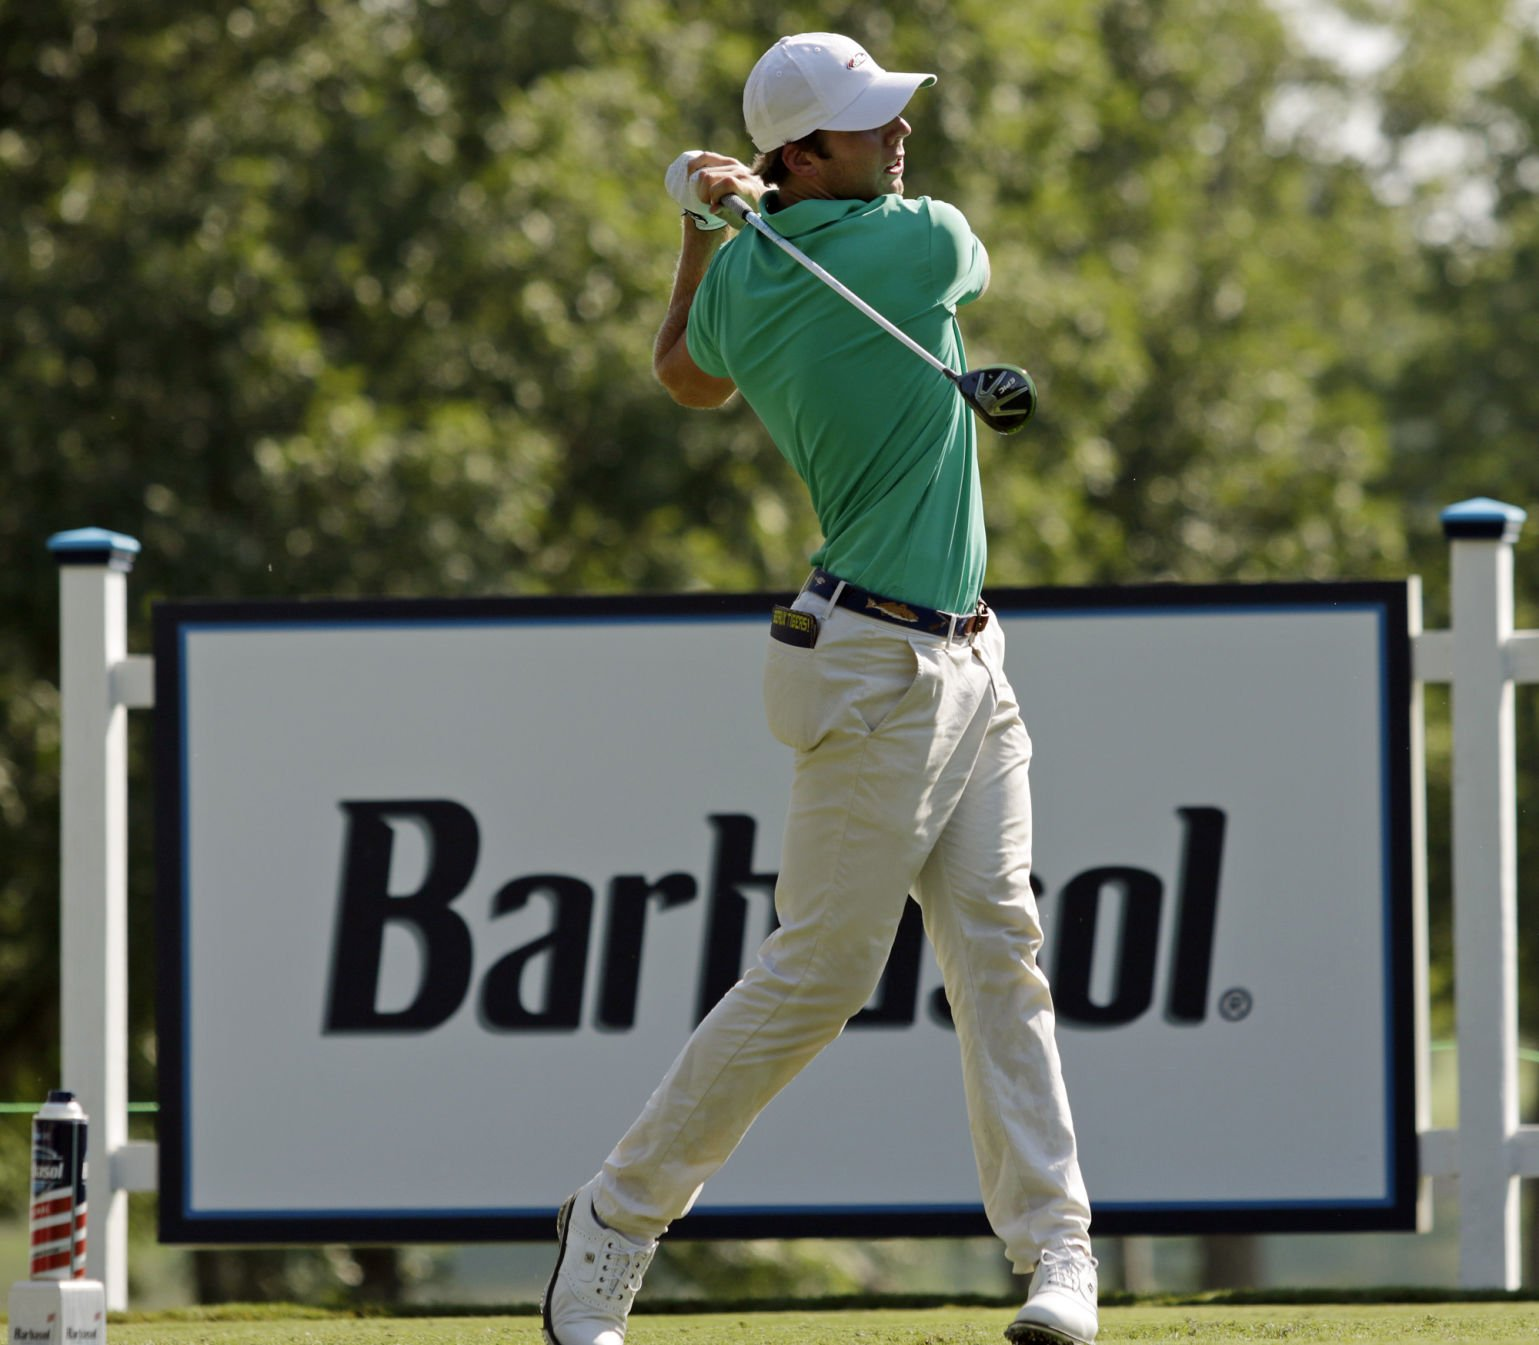 Chad Collins misses 59 chance, leads Barbasol Championship